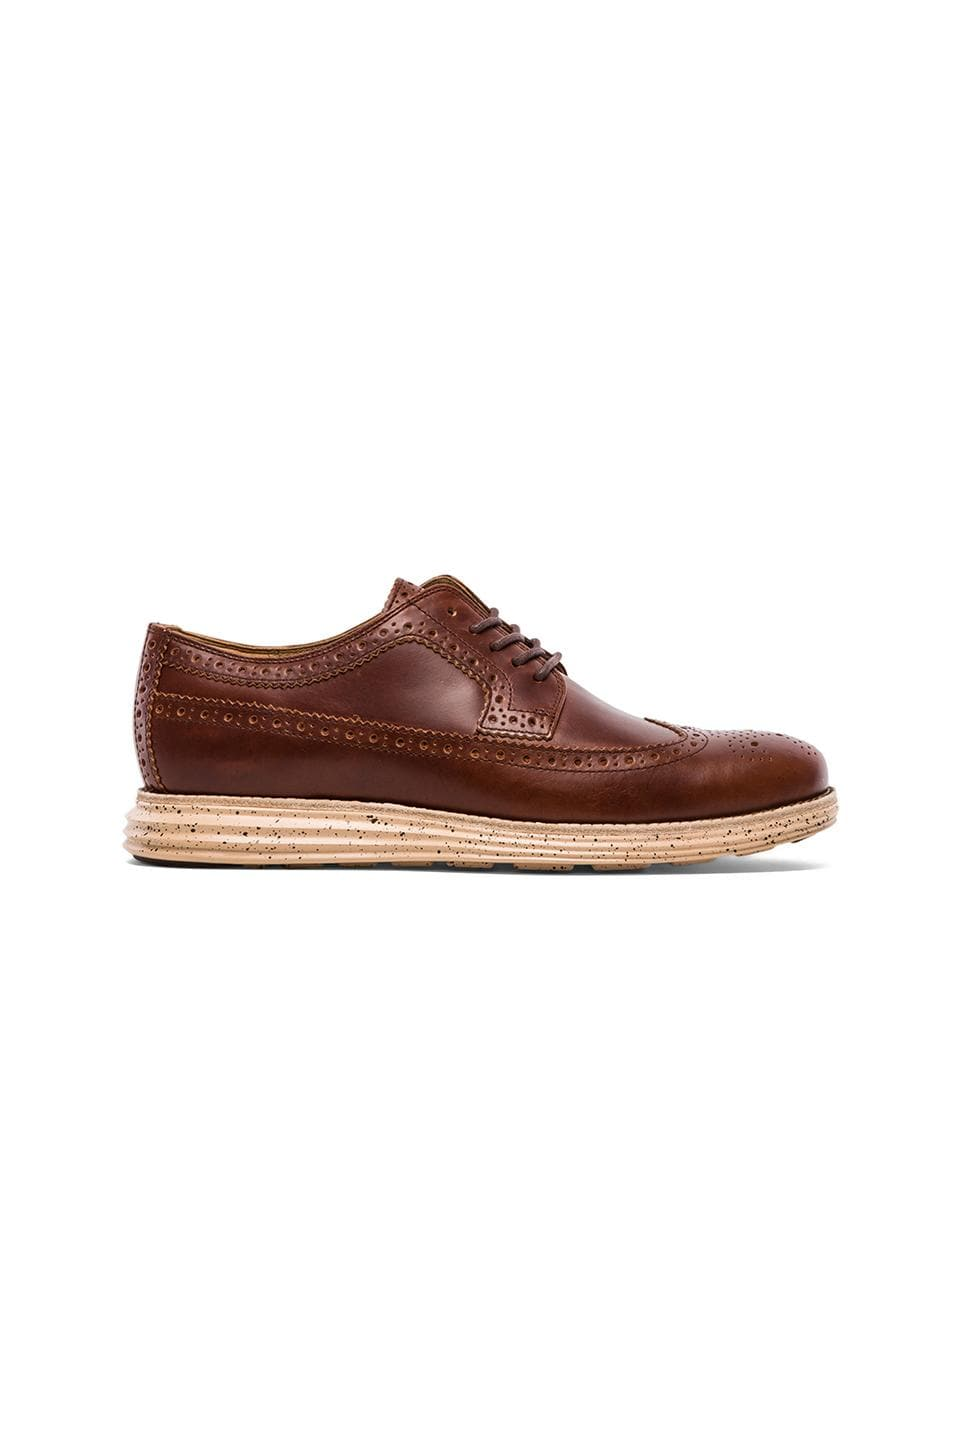 Cole Haan Lunargrand Oxford in Chestnut & Sandstone